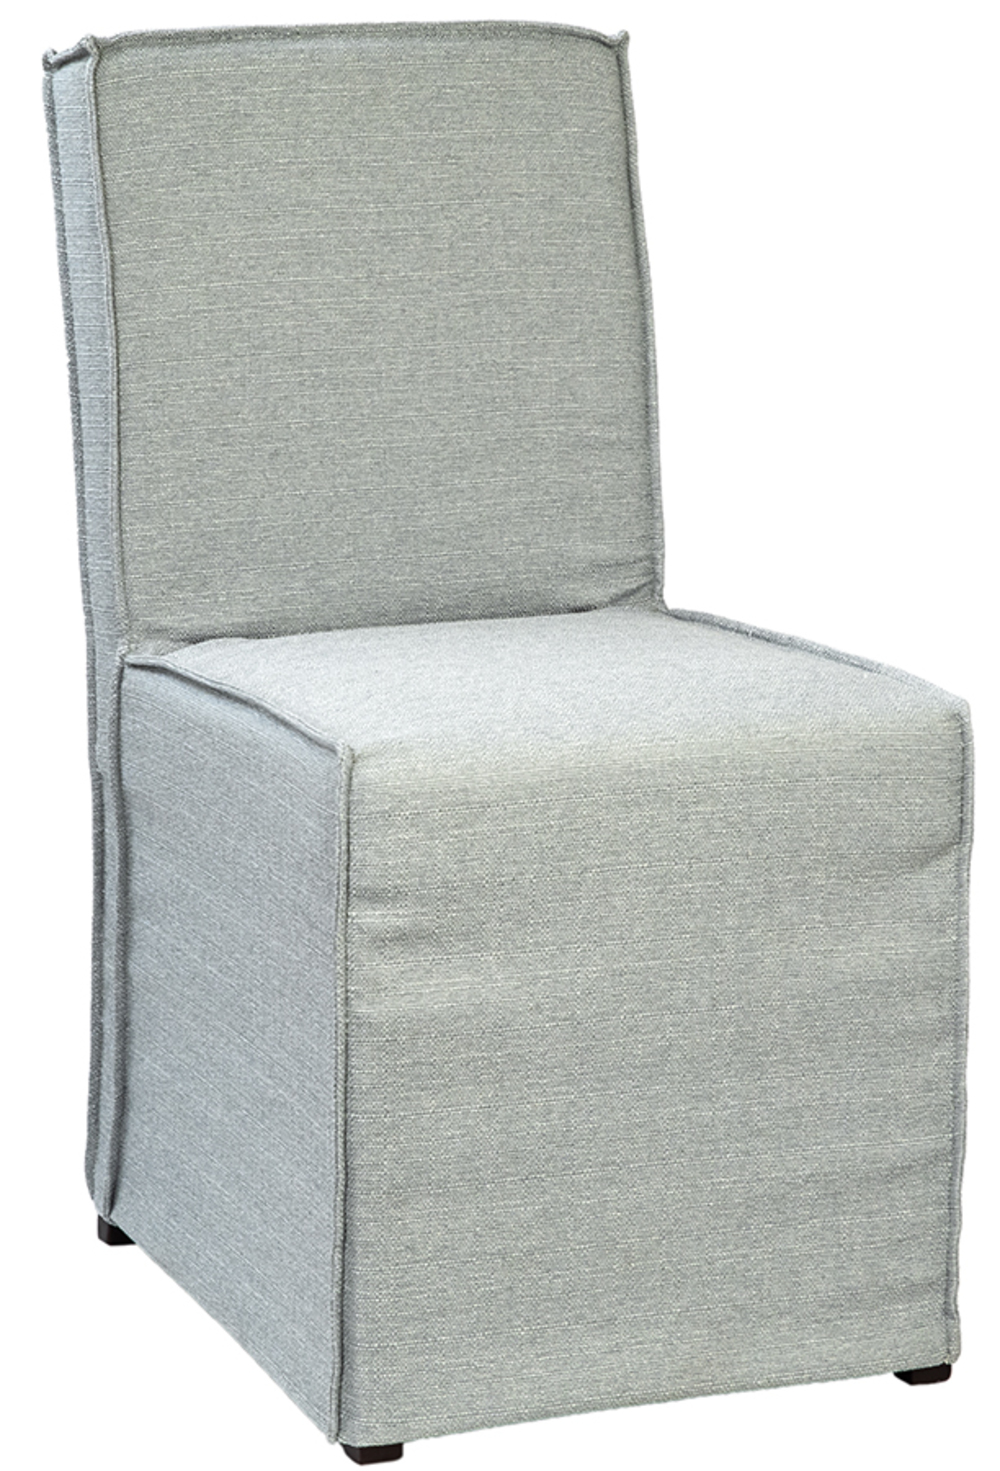 Dovetail Furniture - Hartne Dining Chair